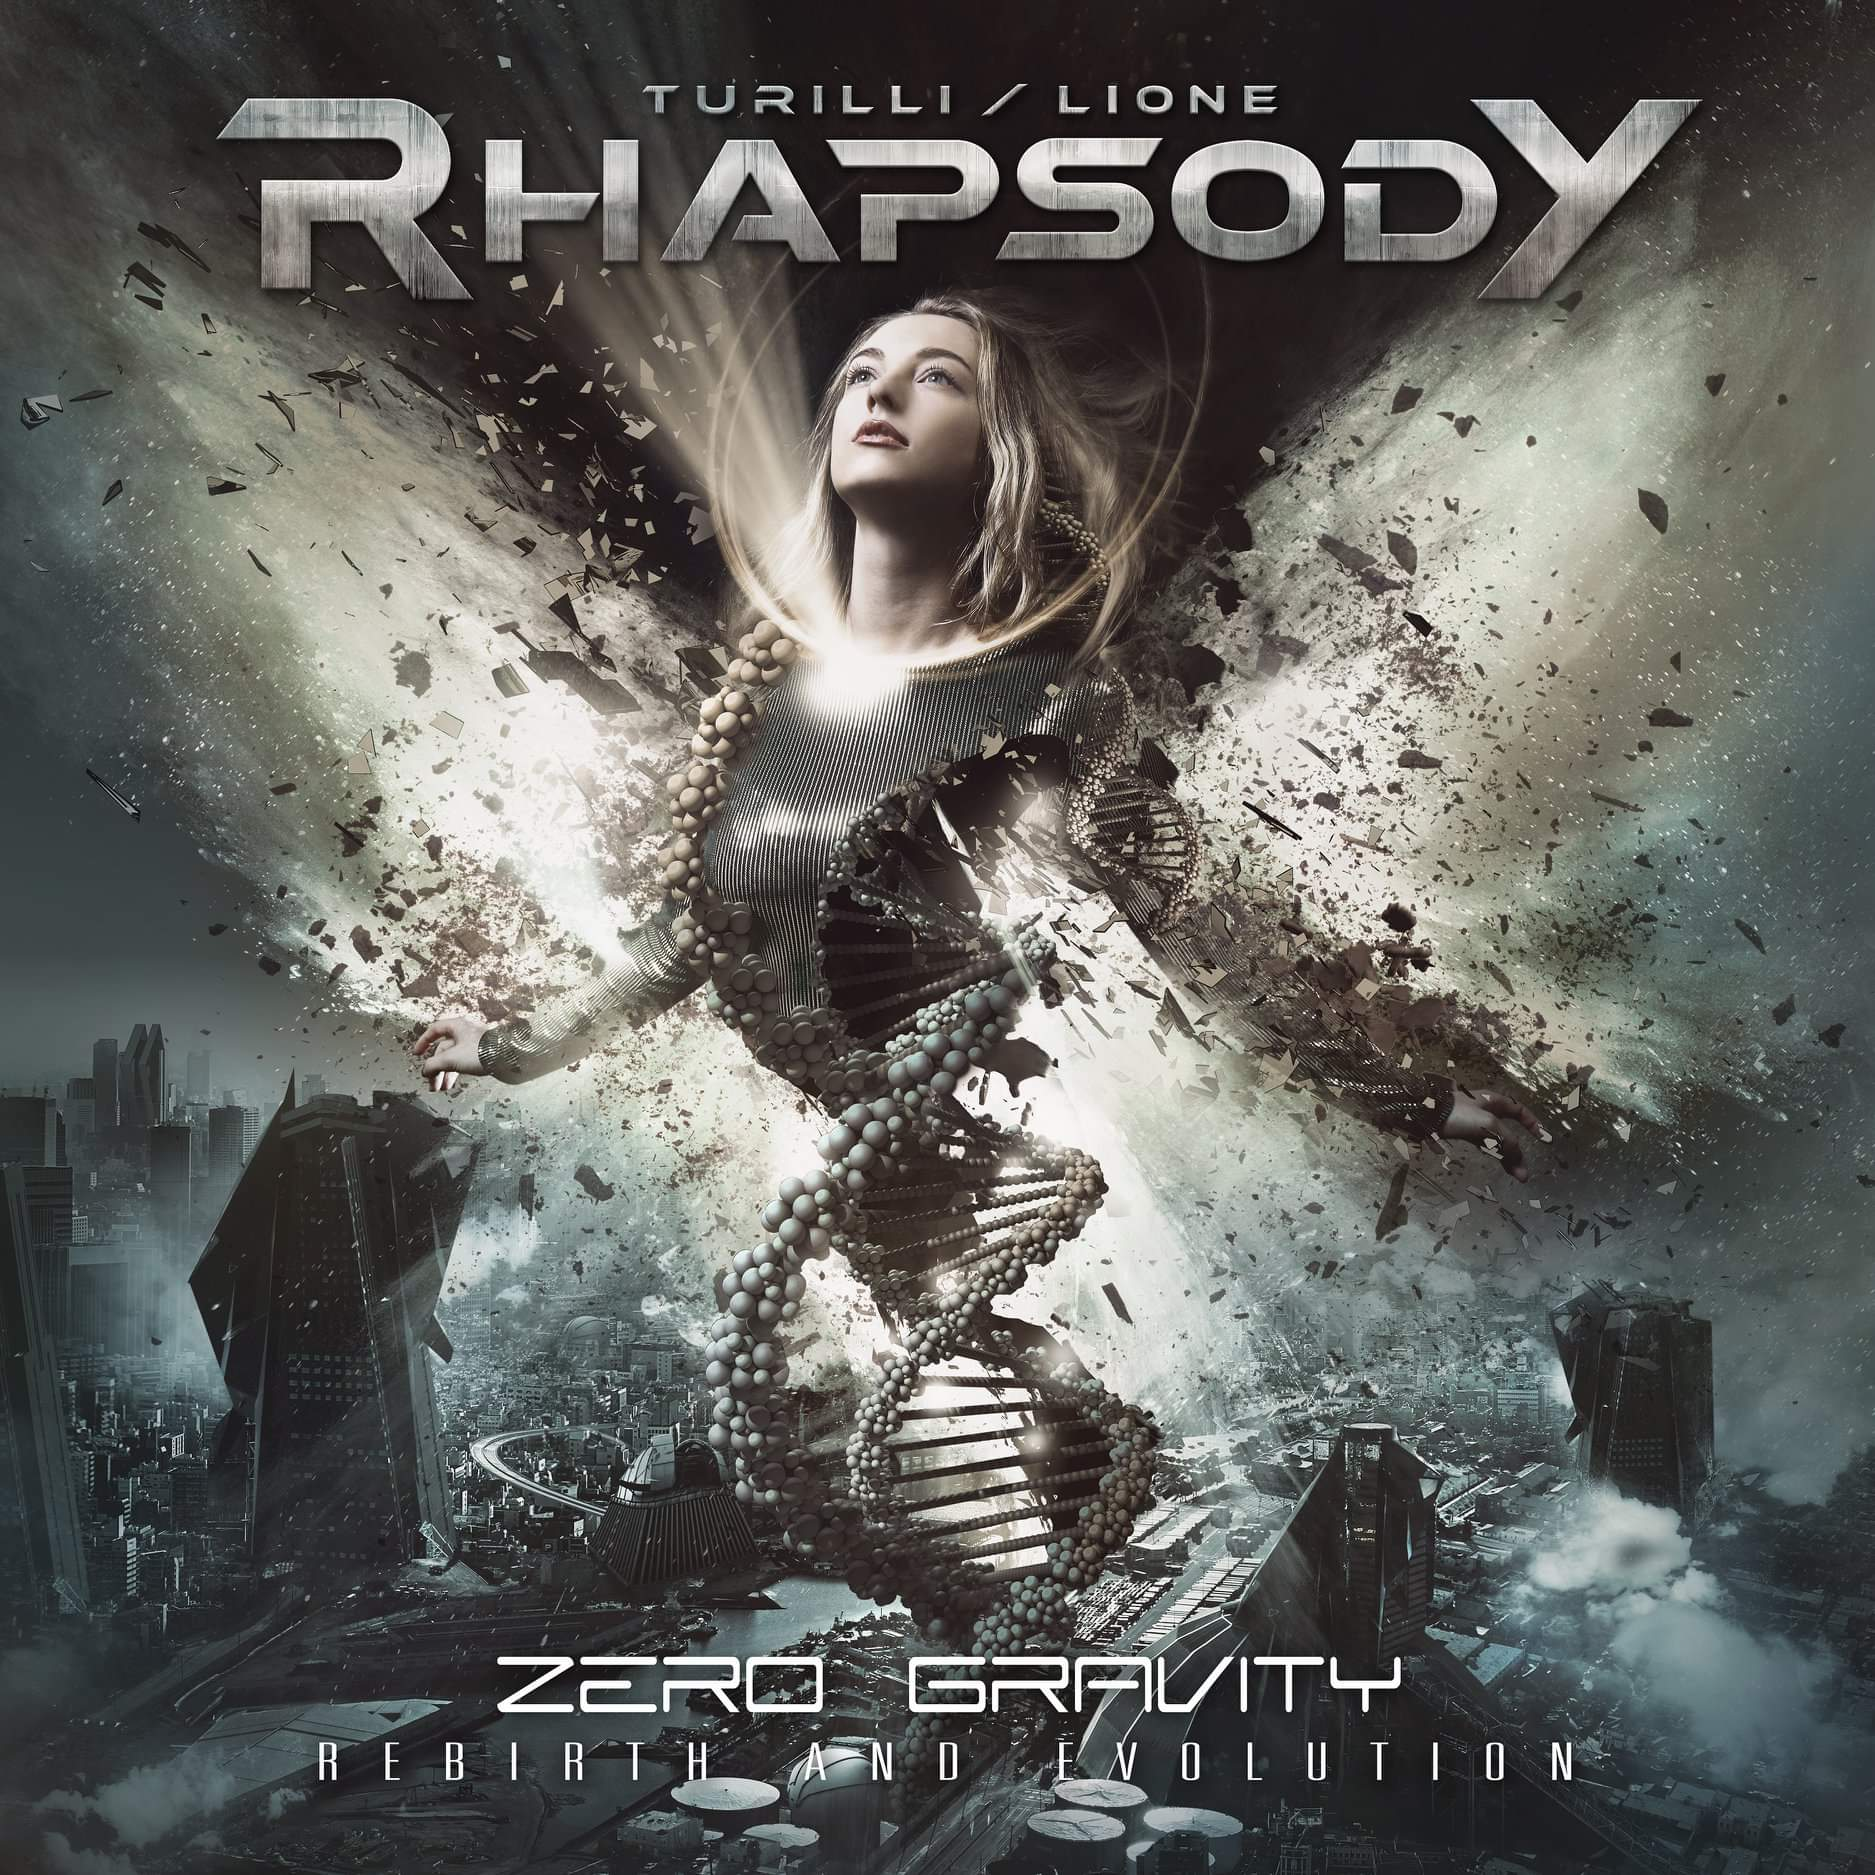 Turilli / Lione Rhapsody : Zero Gravity - Rebirth And Evolution